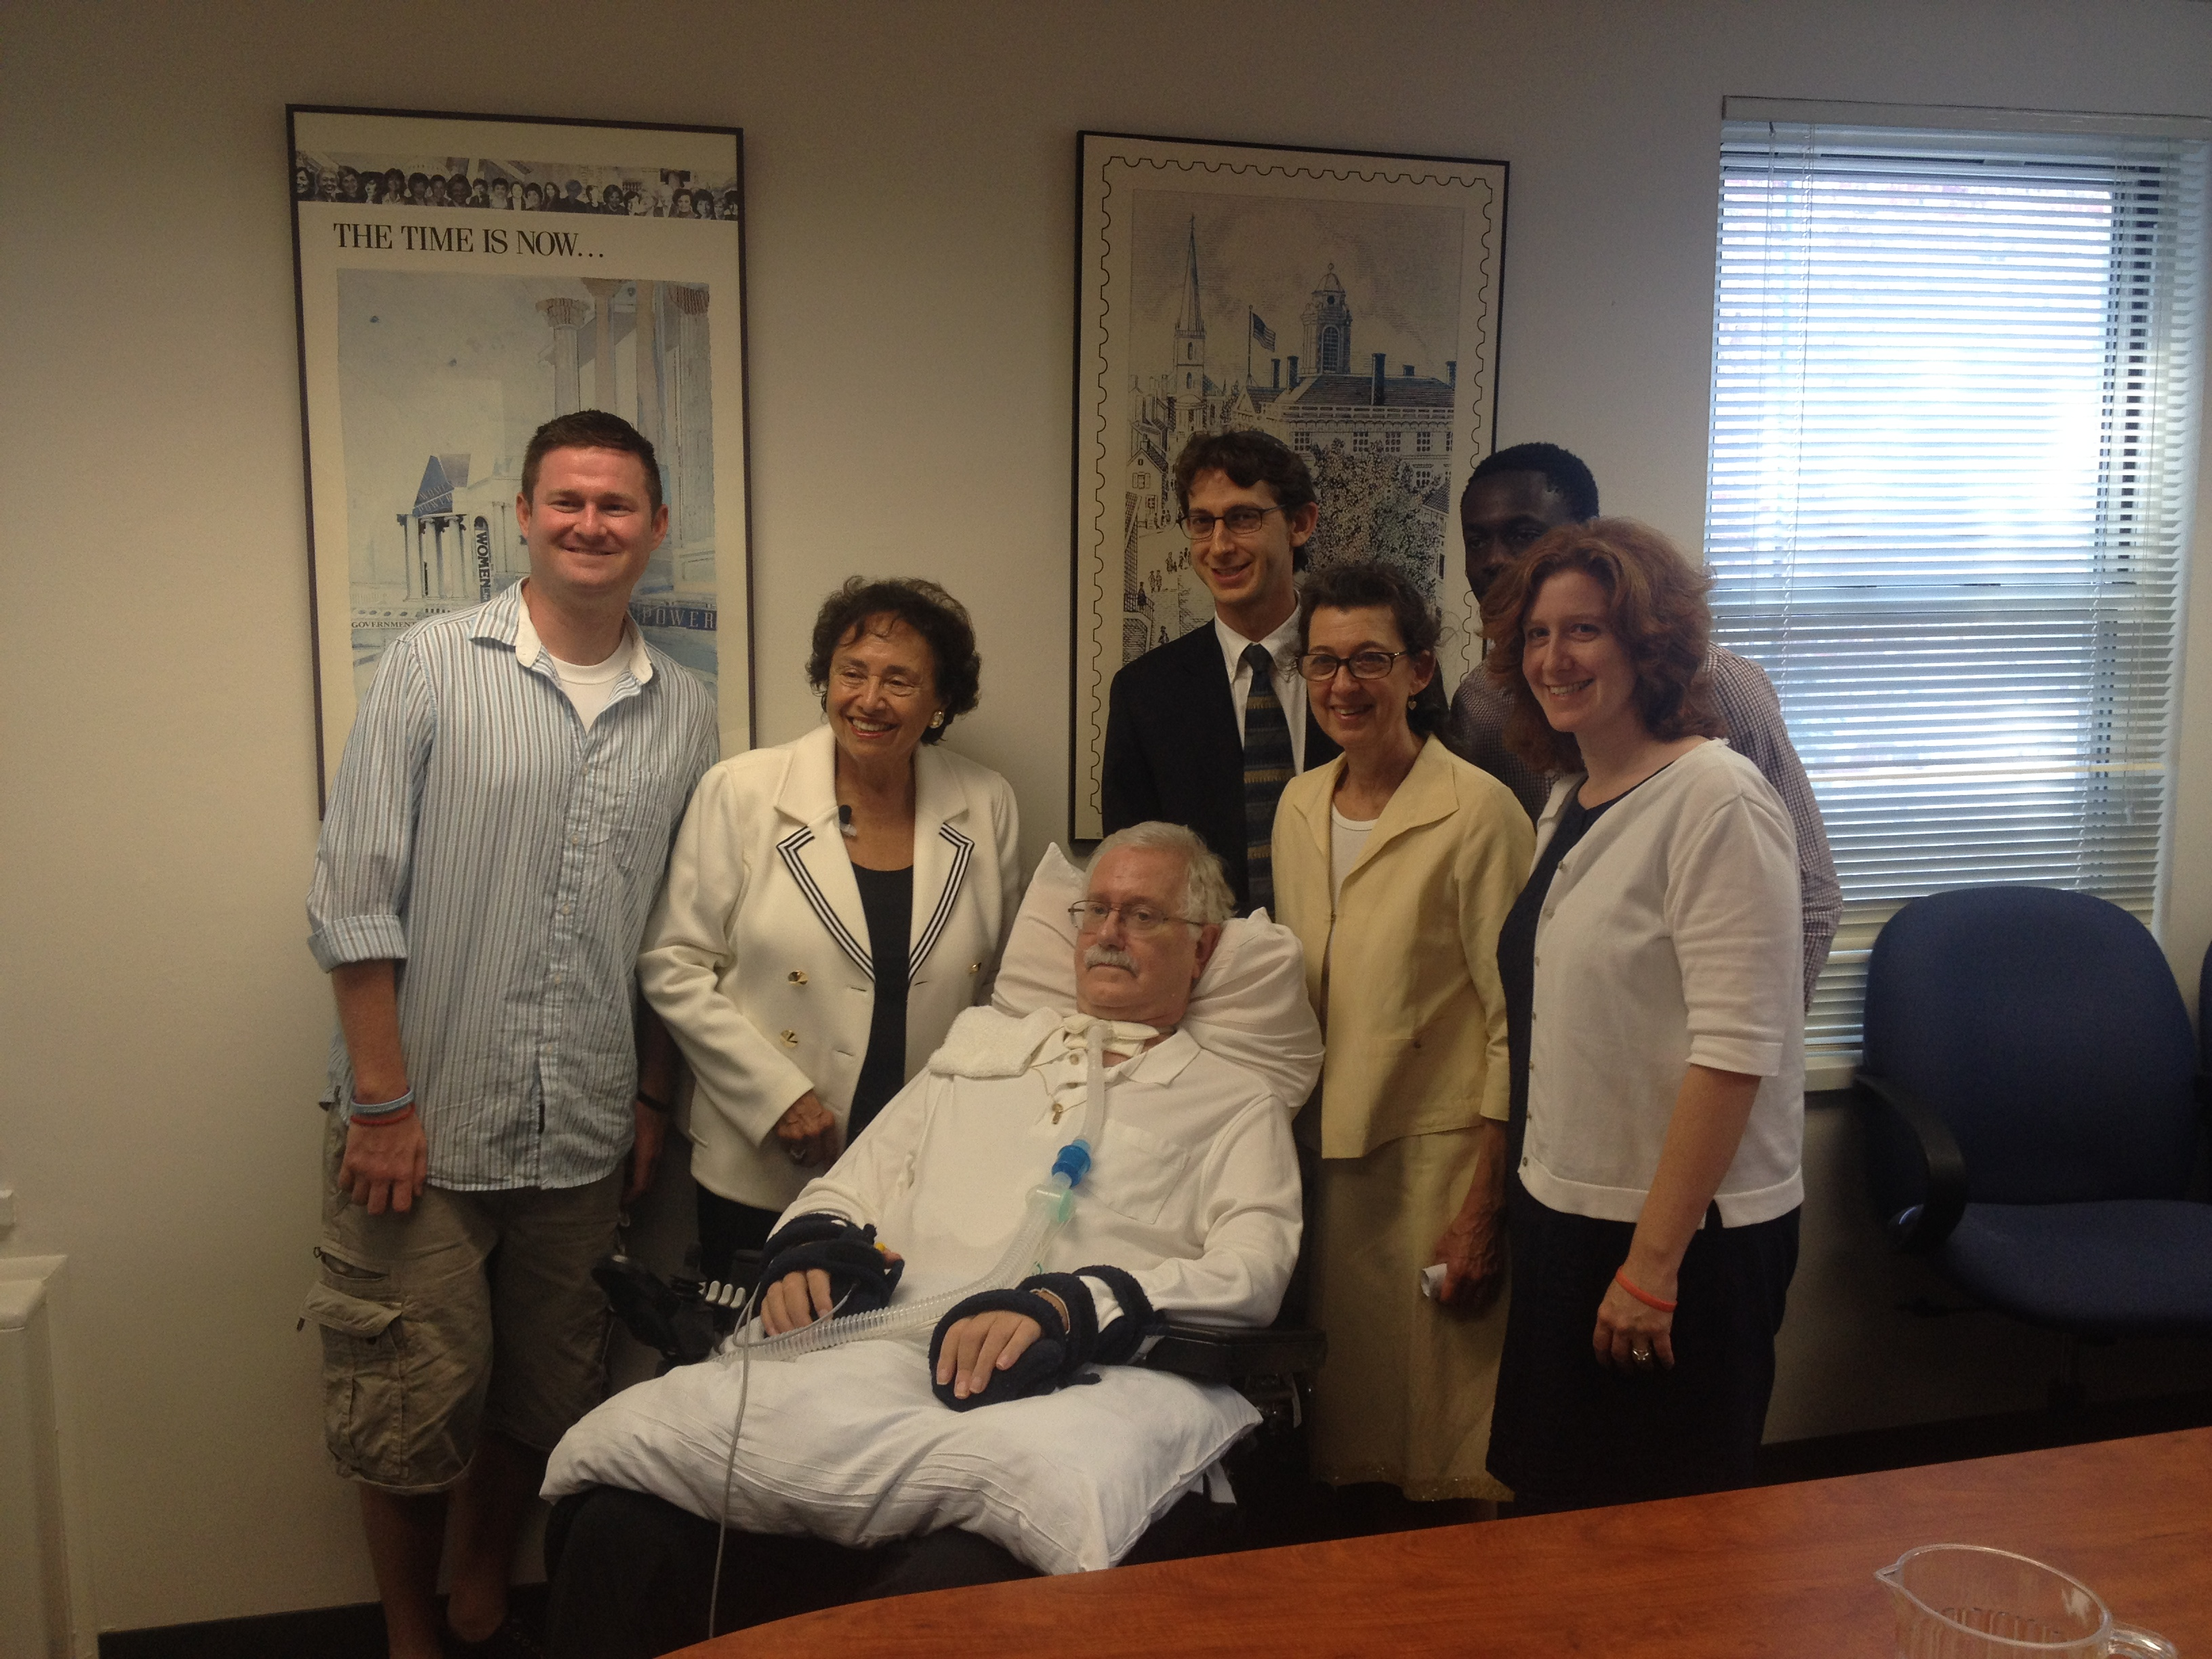 From left: Pat Quinn (co-creator of the ALS Ice Bucket Challenge), New York Congresswoman Nita Lowey, Daniel's father, Daniel, his mother, Max (one of Daniel's dad's nurses), and Daniel's sister.